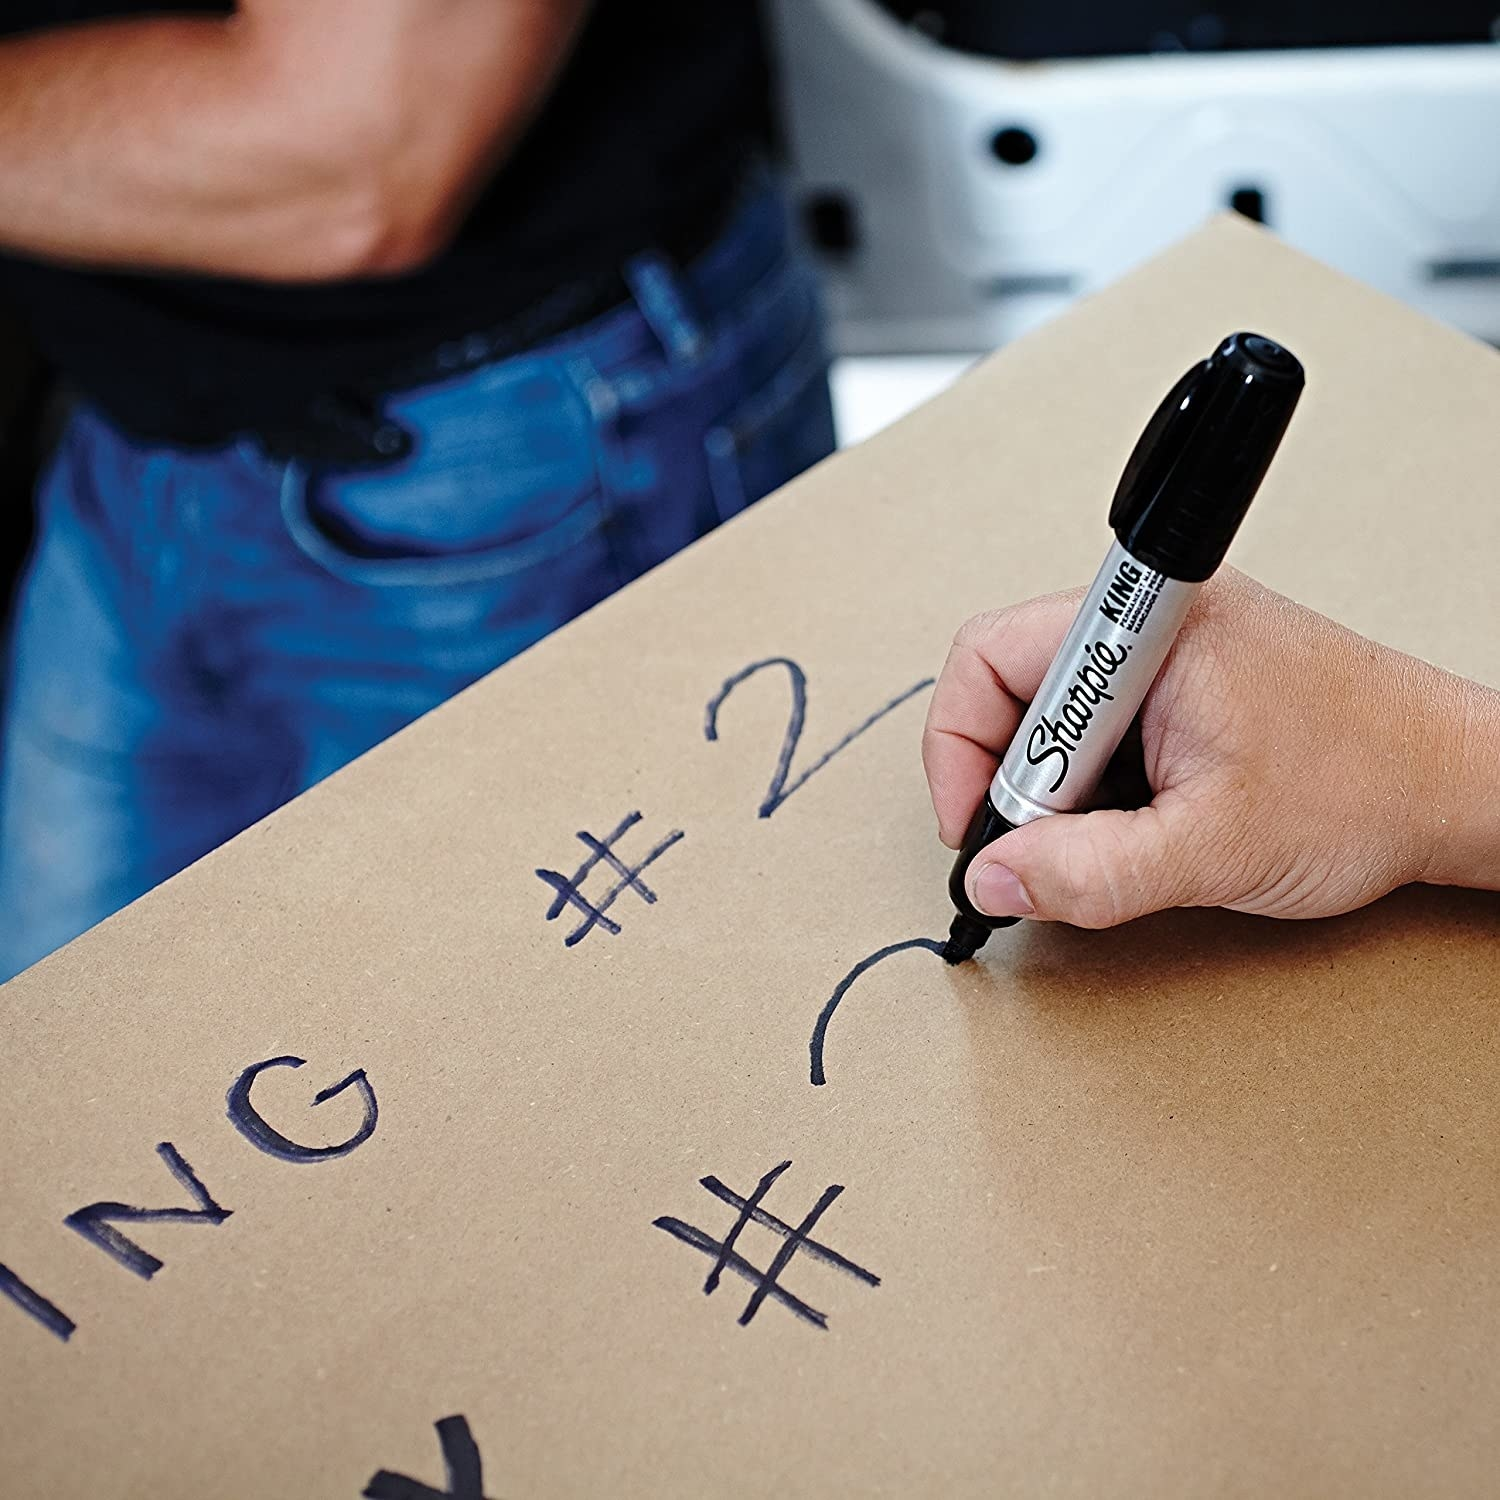 A model's hand holding a large black ink Sharpie marker writing on a cardboard box